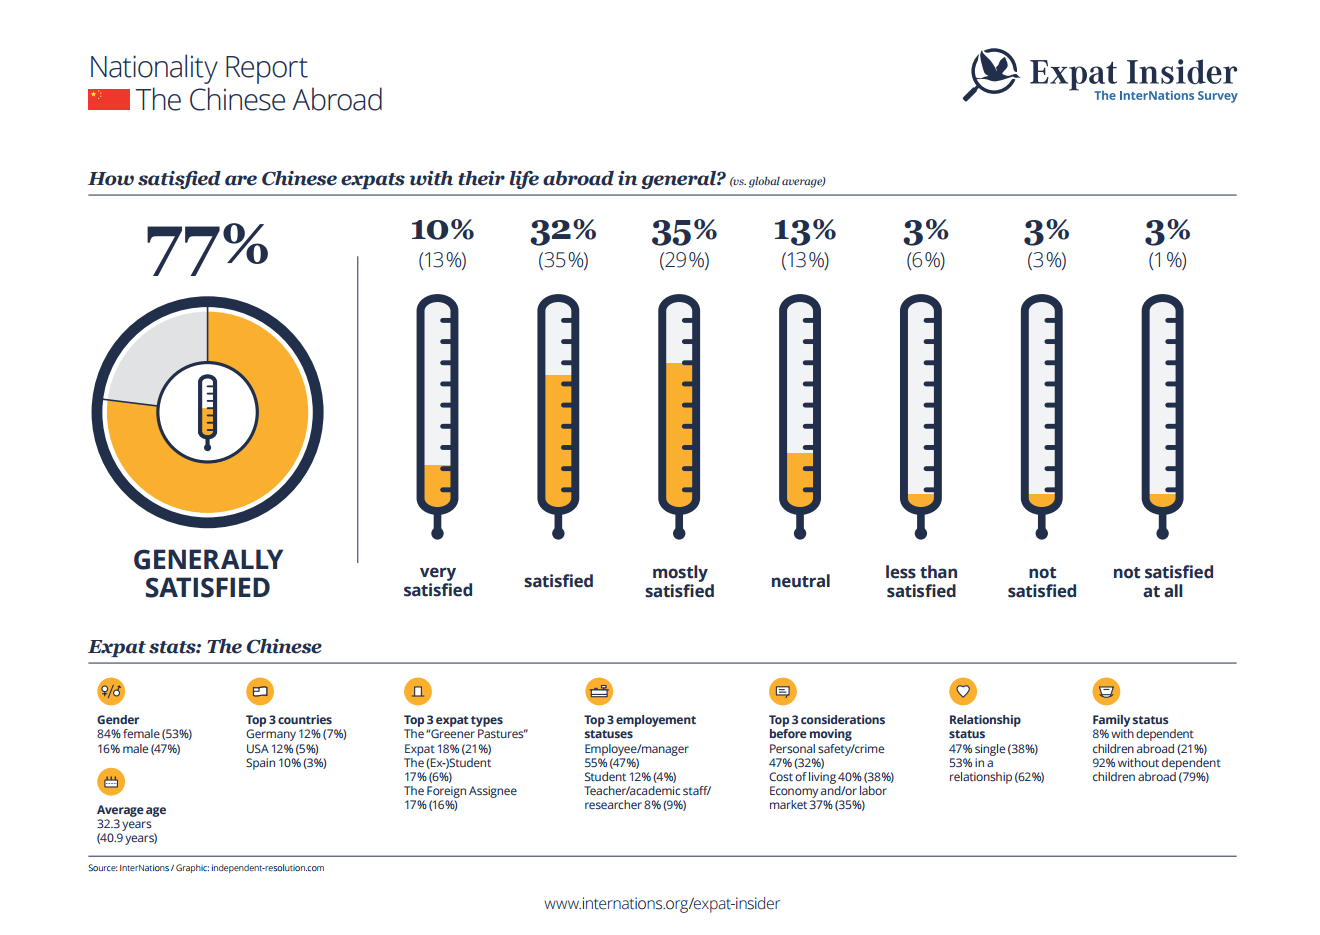 Expat statistics on the Chinese abroad - infographic